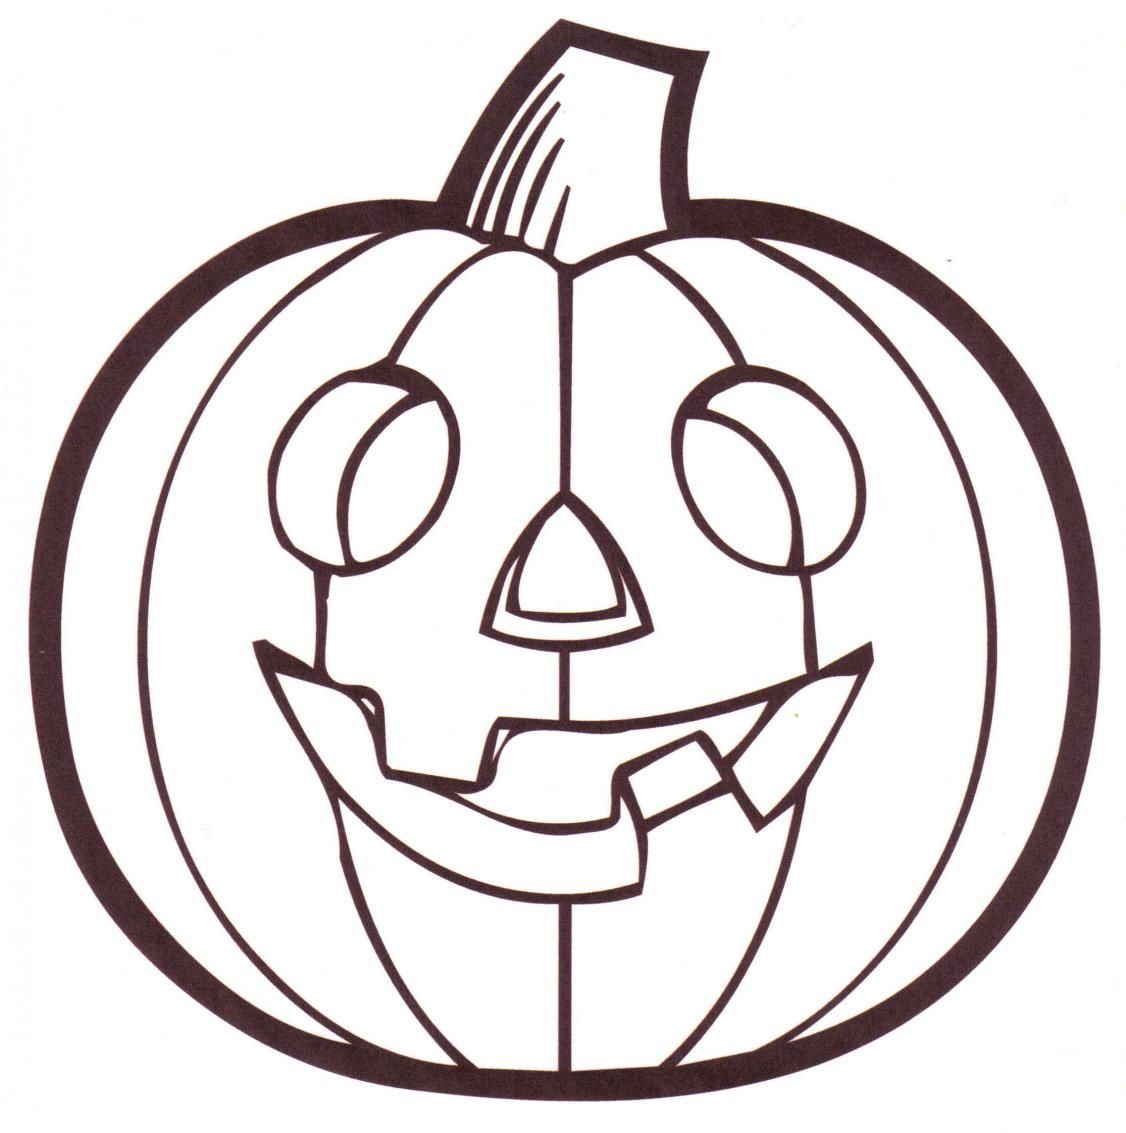 We Have Compiled A Set Of High Quality Pumpkin Coloring Pages Featuring Pumpkins Of Different